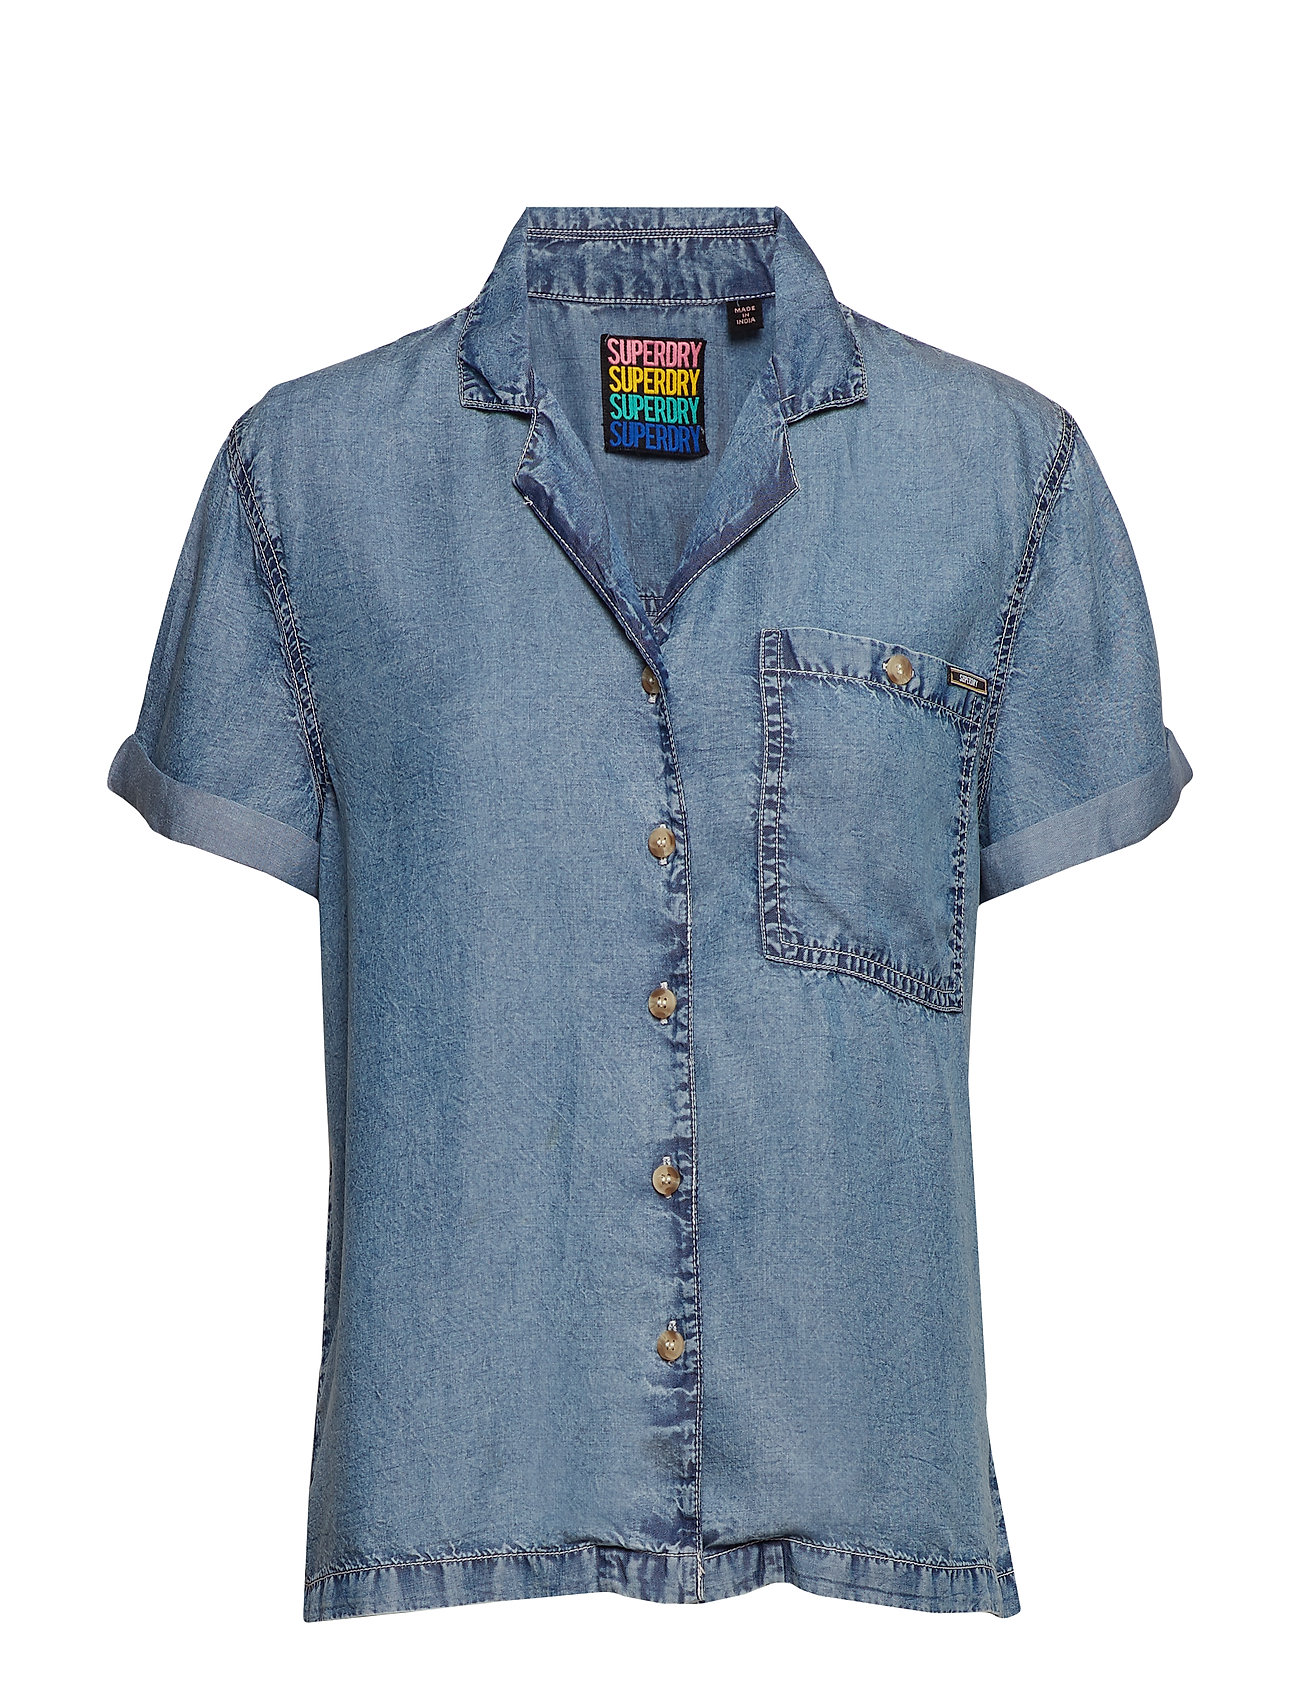 Superdry RIVA SHIRT - LIGHT BLUE WASH